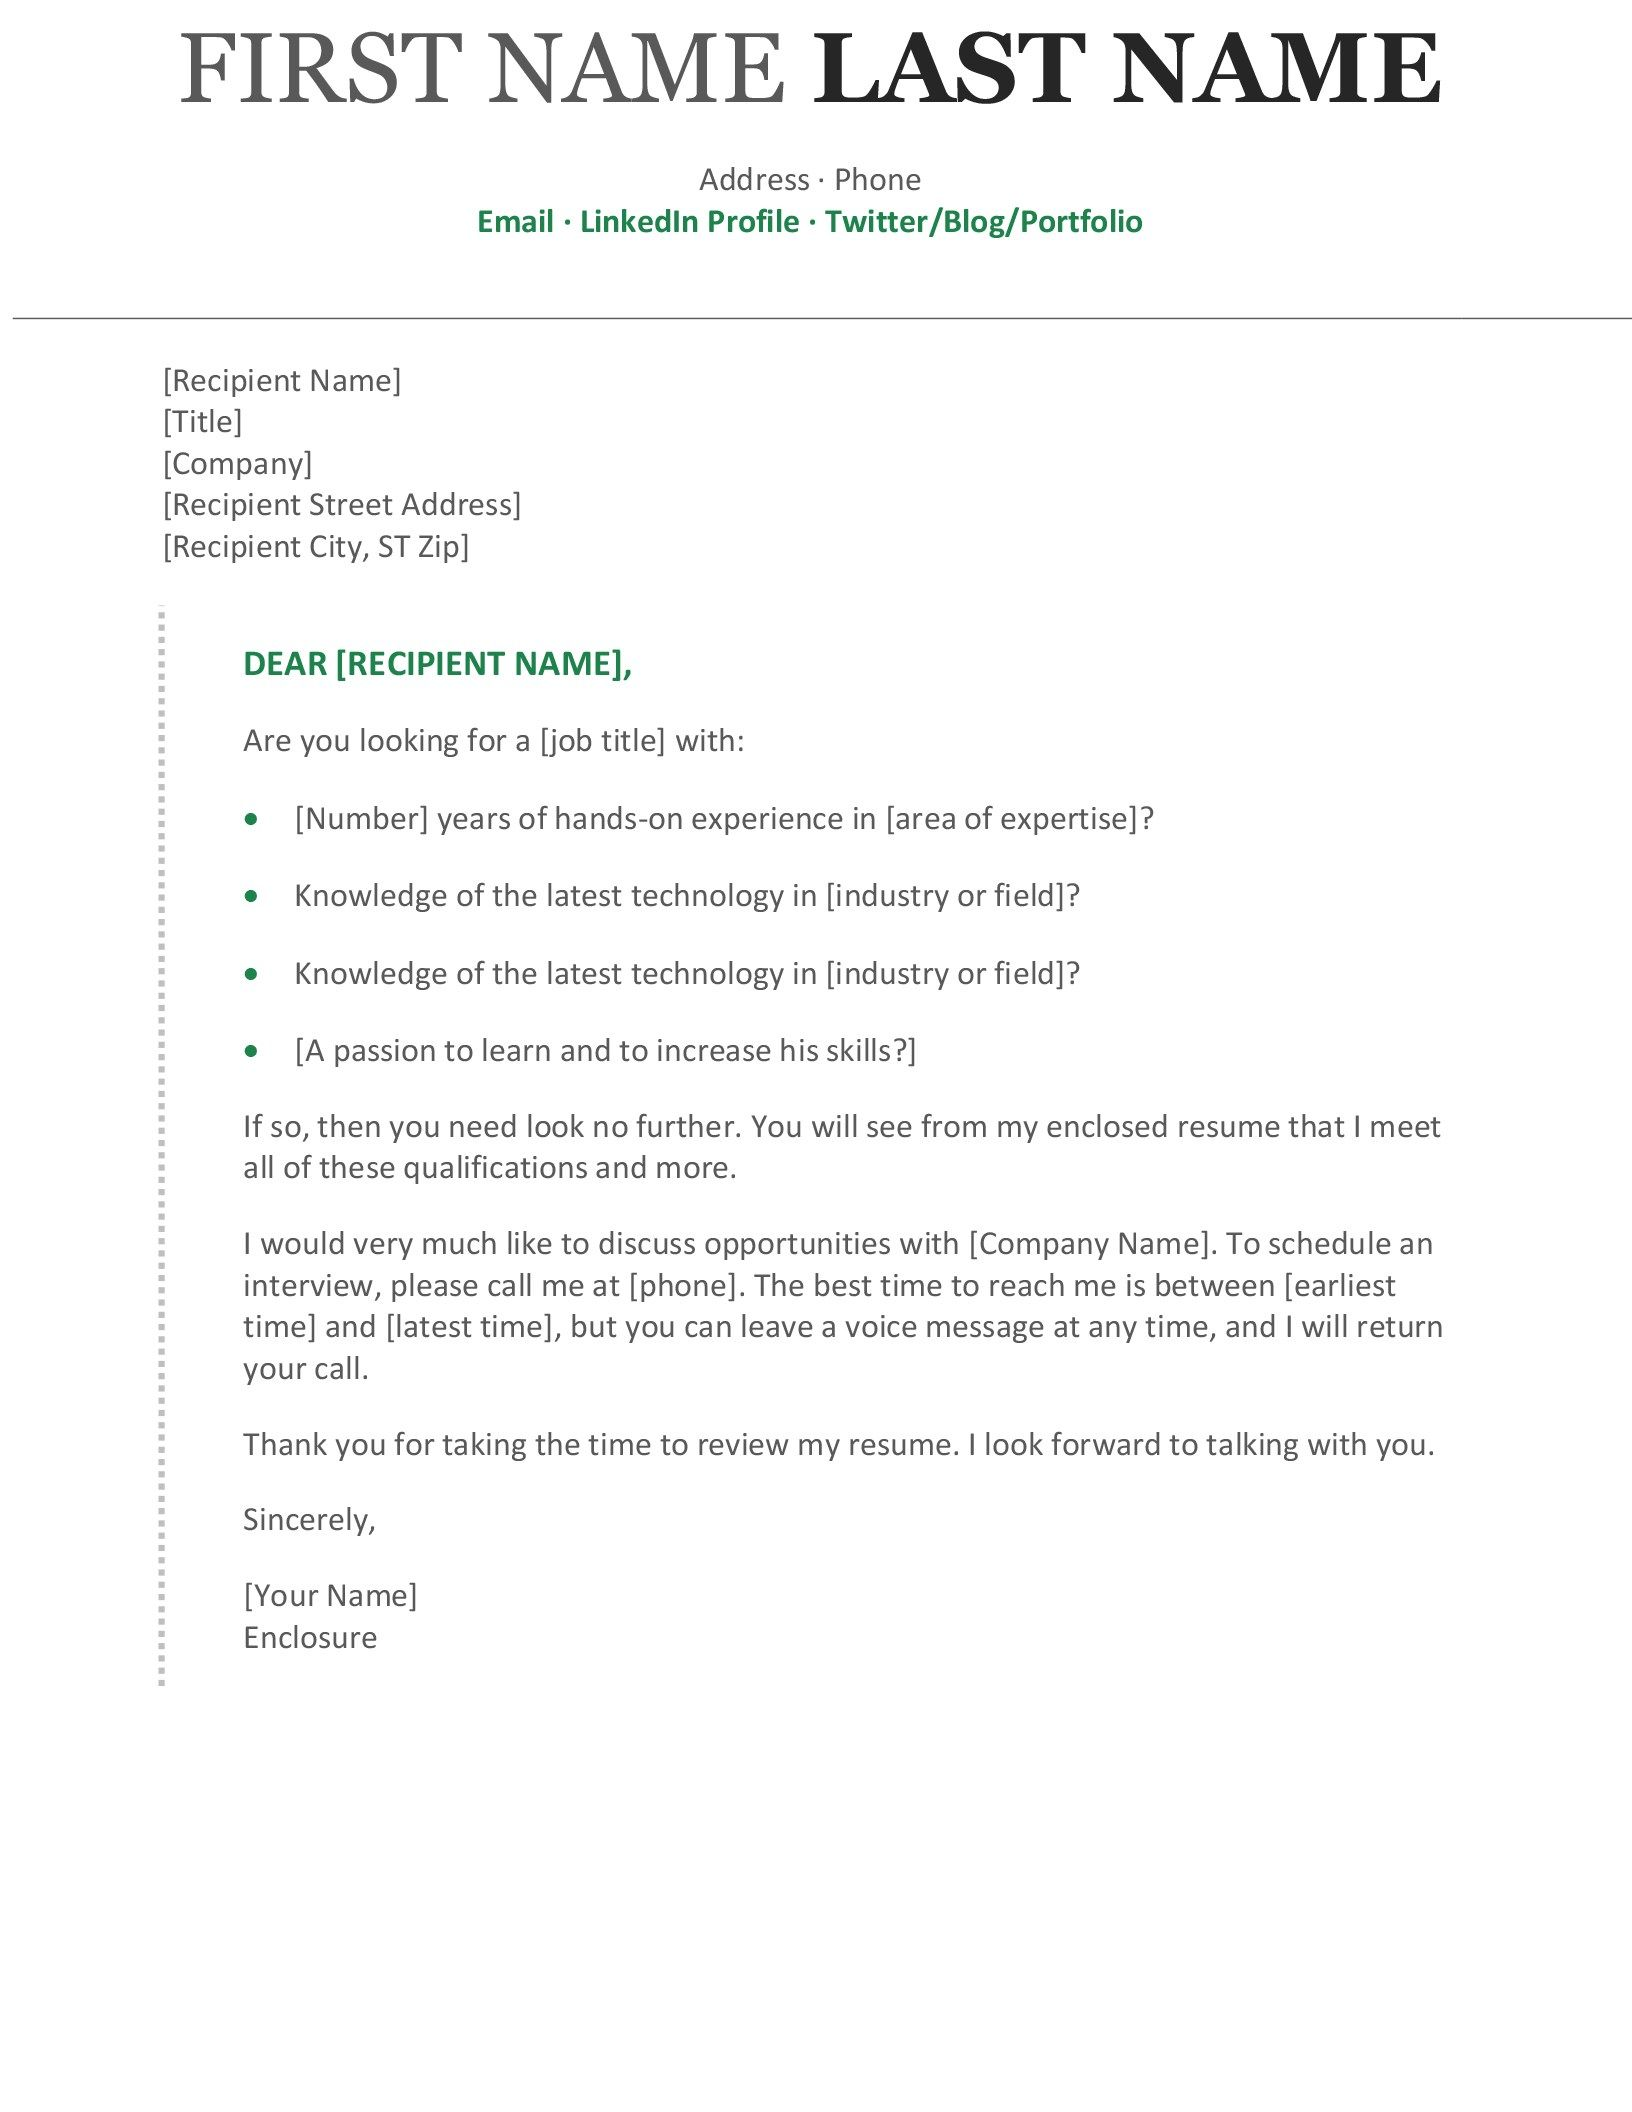 Modern Chronological Cover Letter Cover Letter For Resume Cover Letter Template Resume Cover Letter Examples Combined resume and cover letter